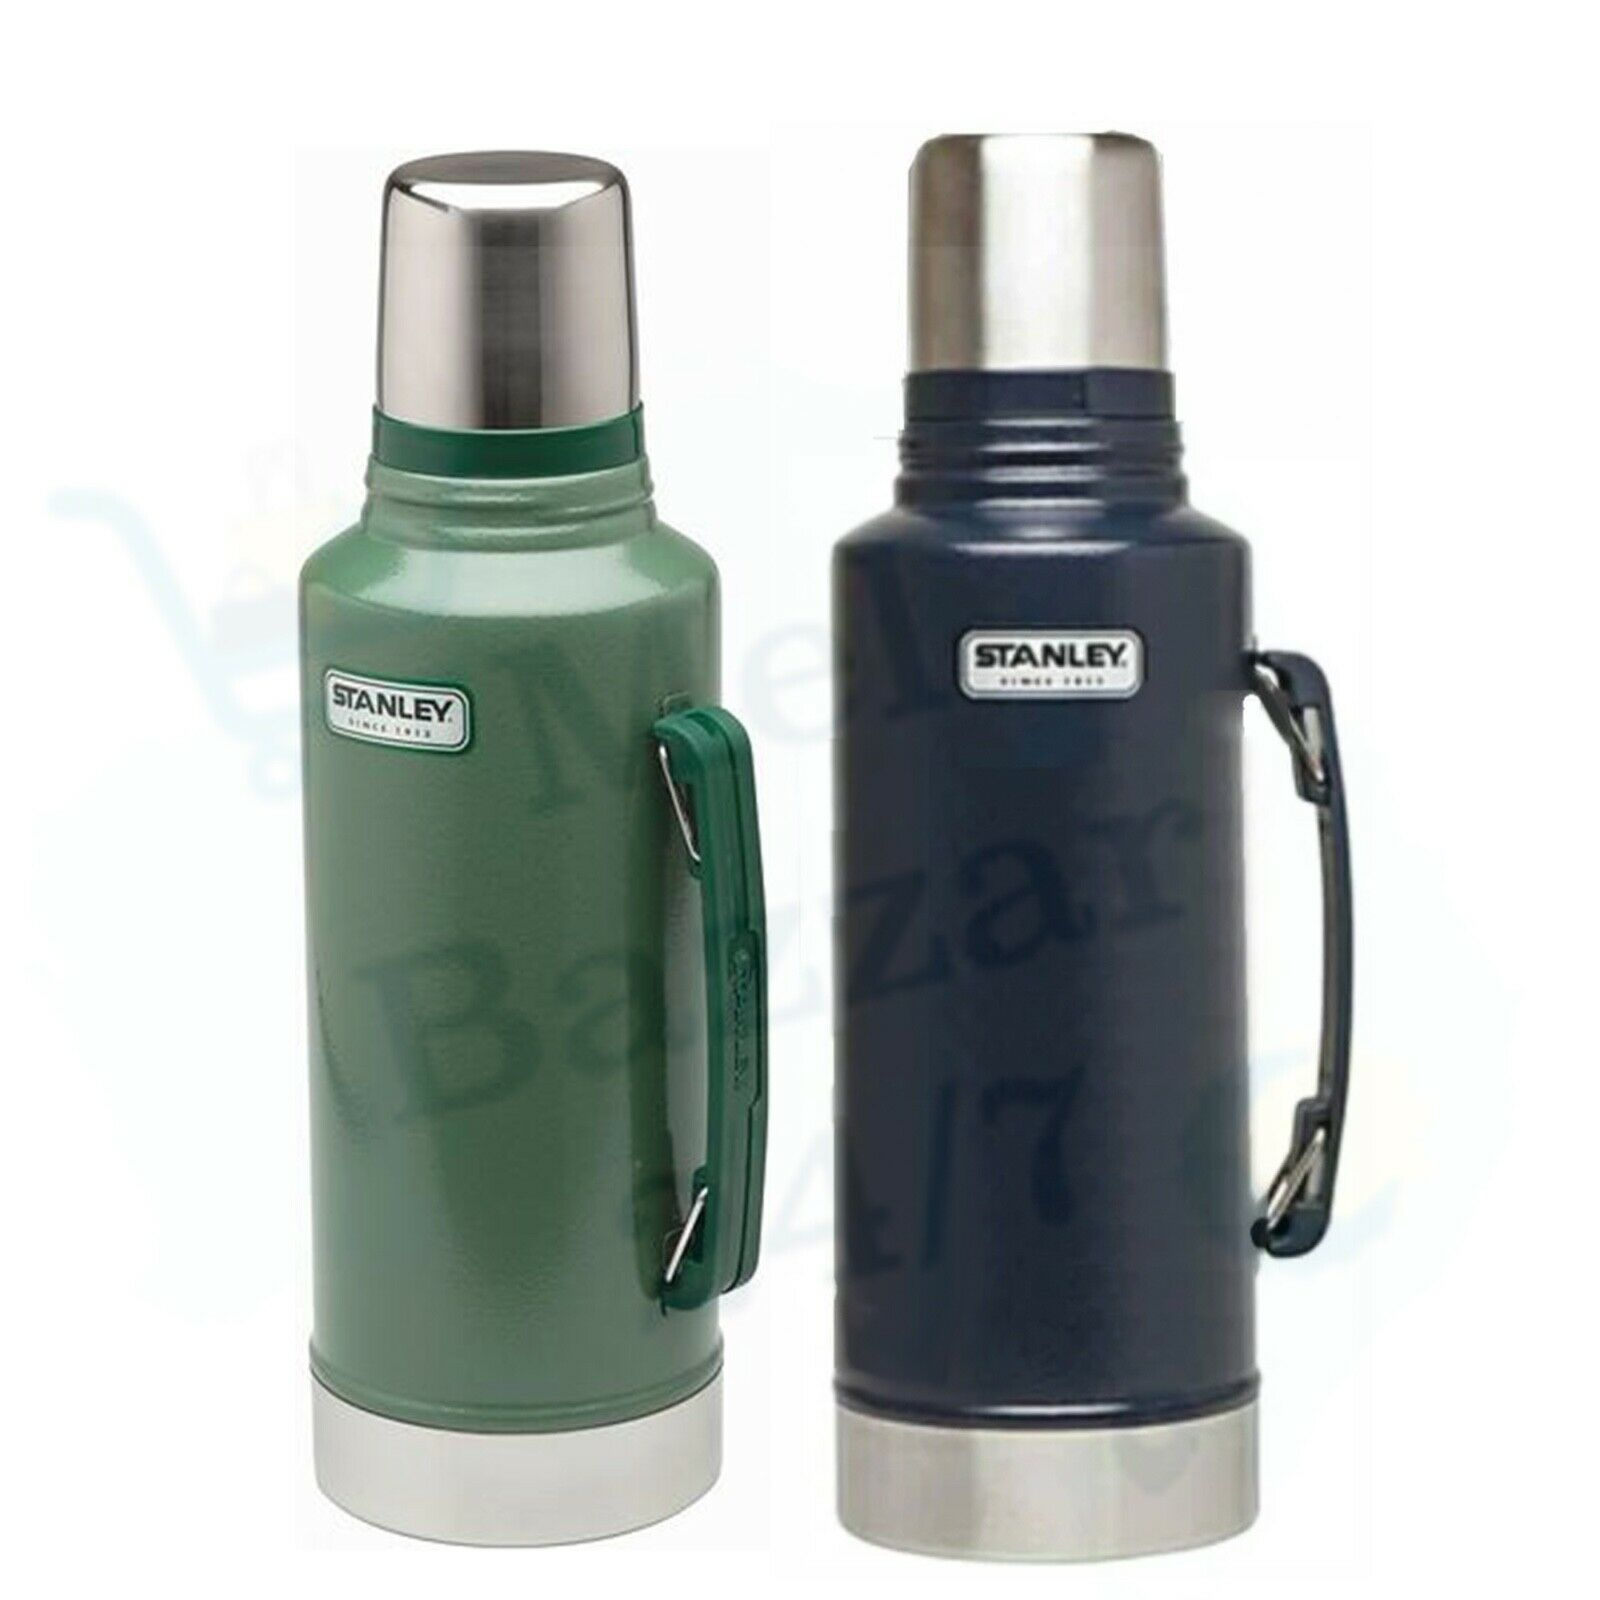 New Stanley 1.9L Thermos Flask  Insulated Vacuum Stainless Steel Classic Bottle  with 60% off discount